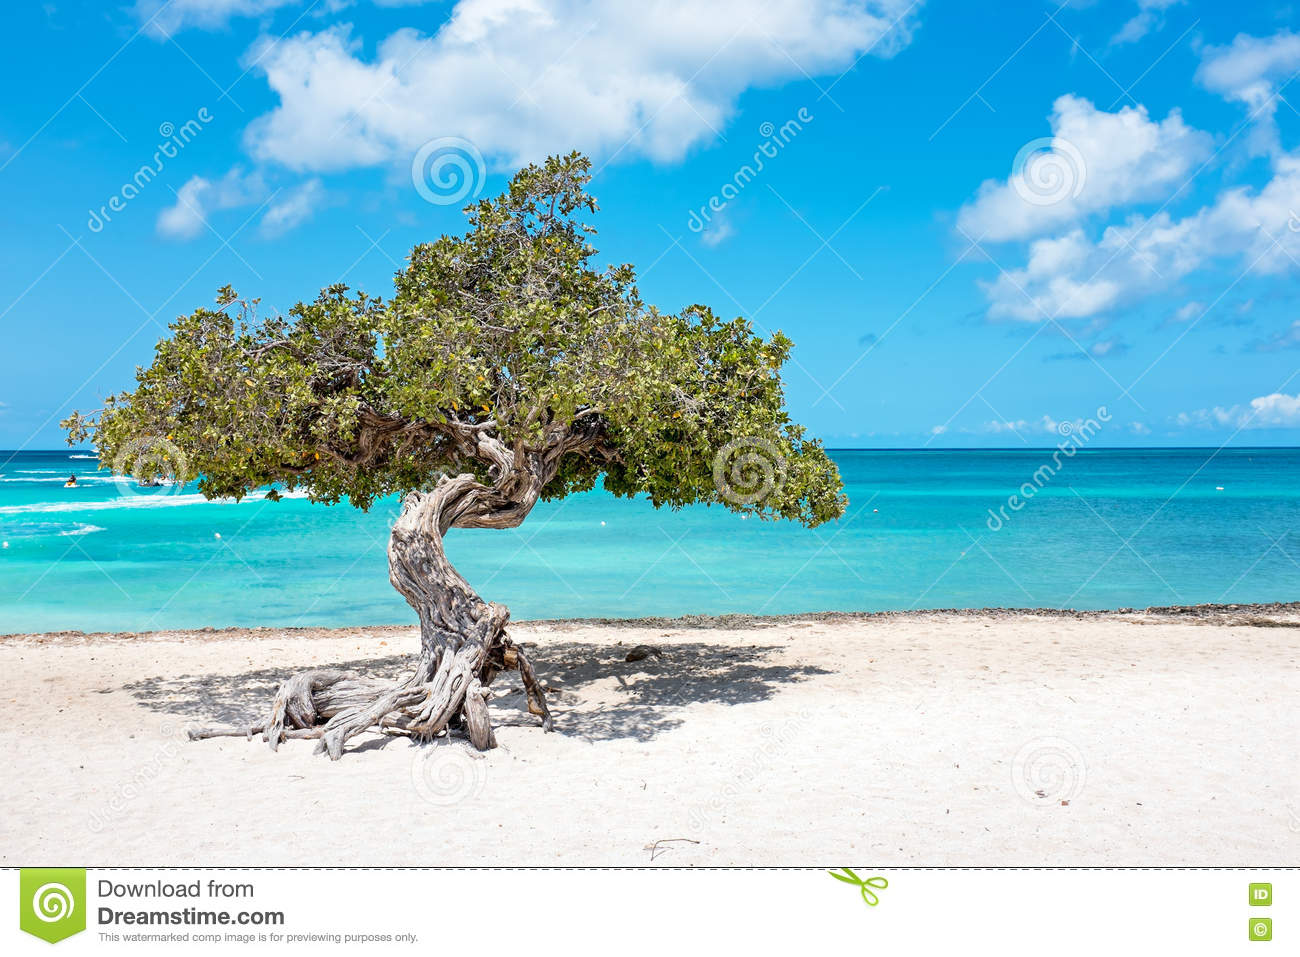 Divi divi tree on aruba island stock photo image 72332803 - Divi tamarijn aruba ...